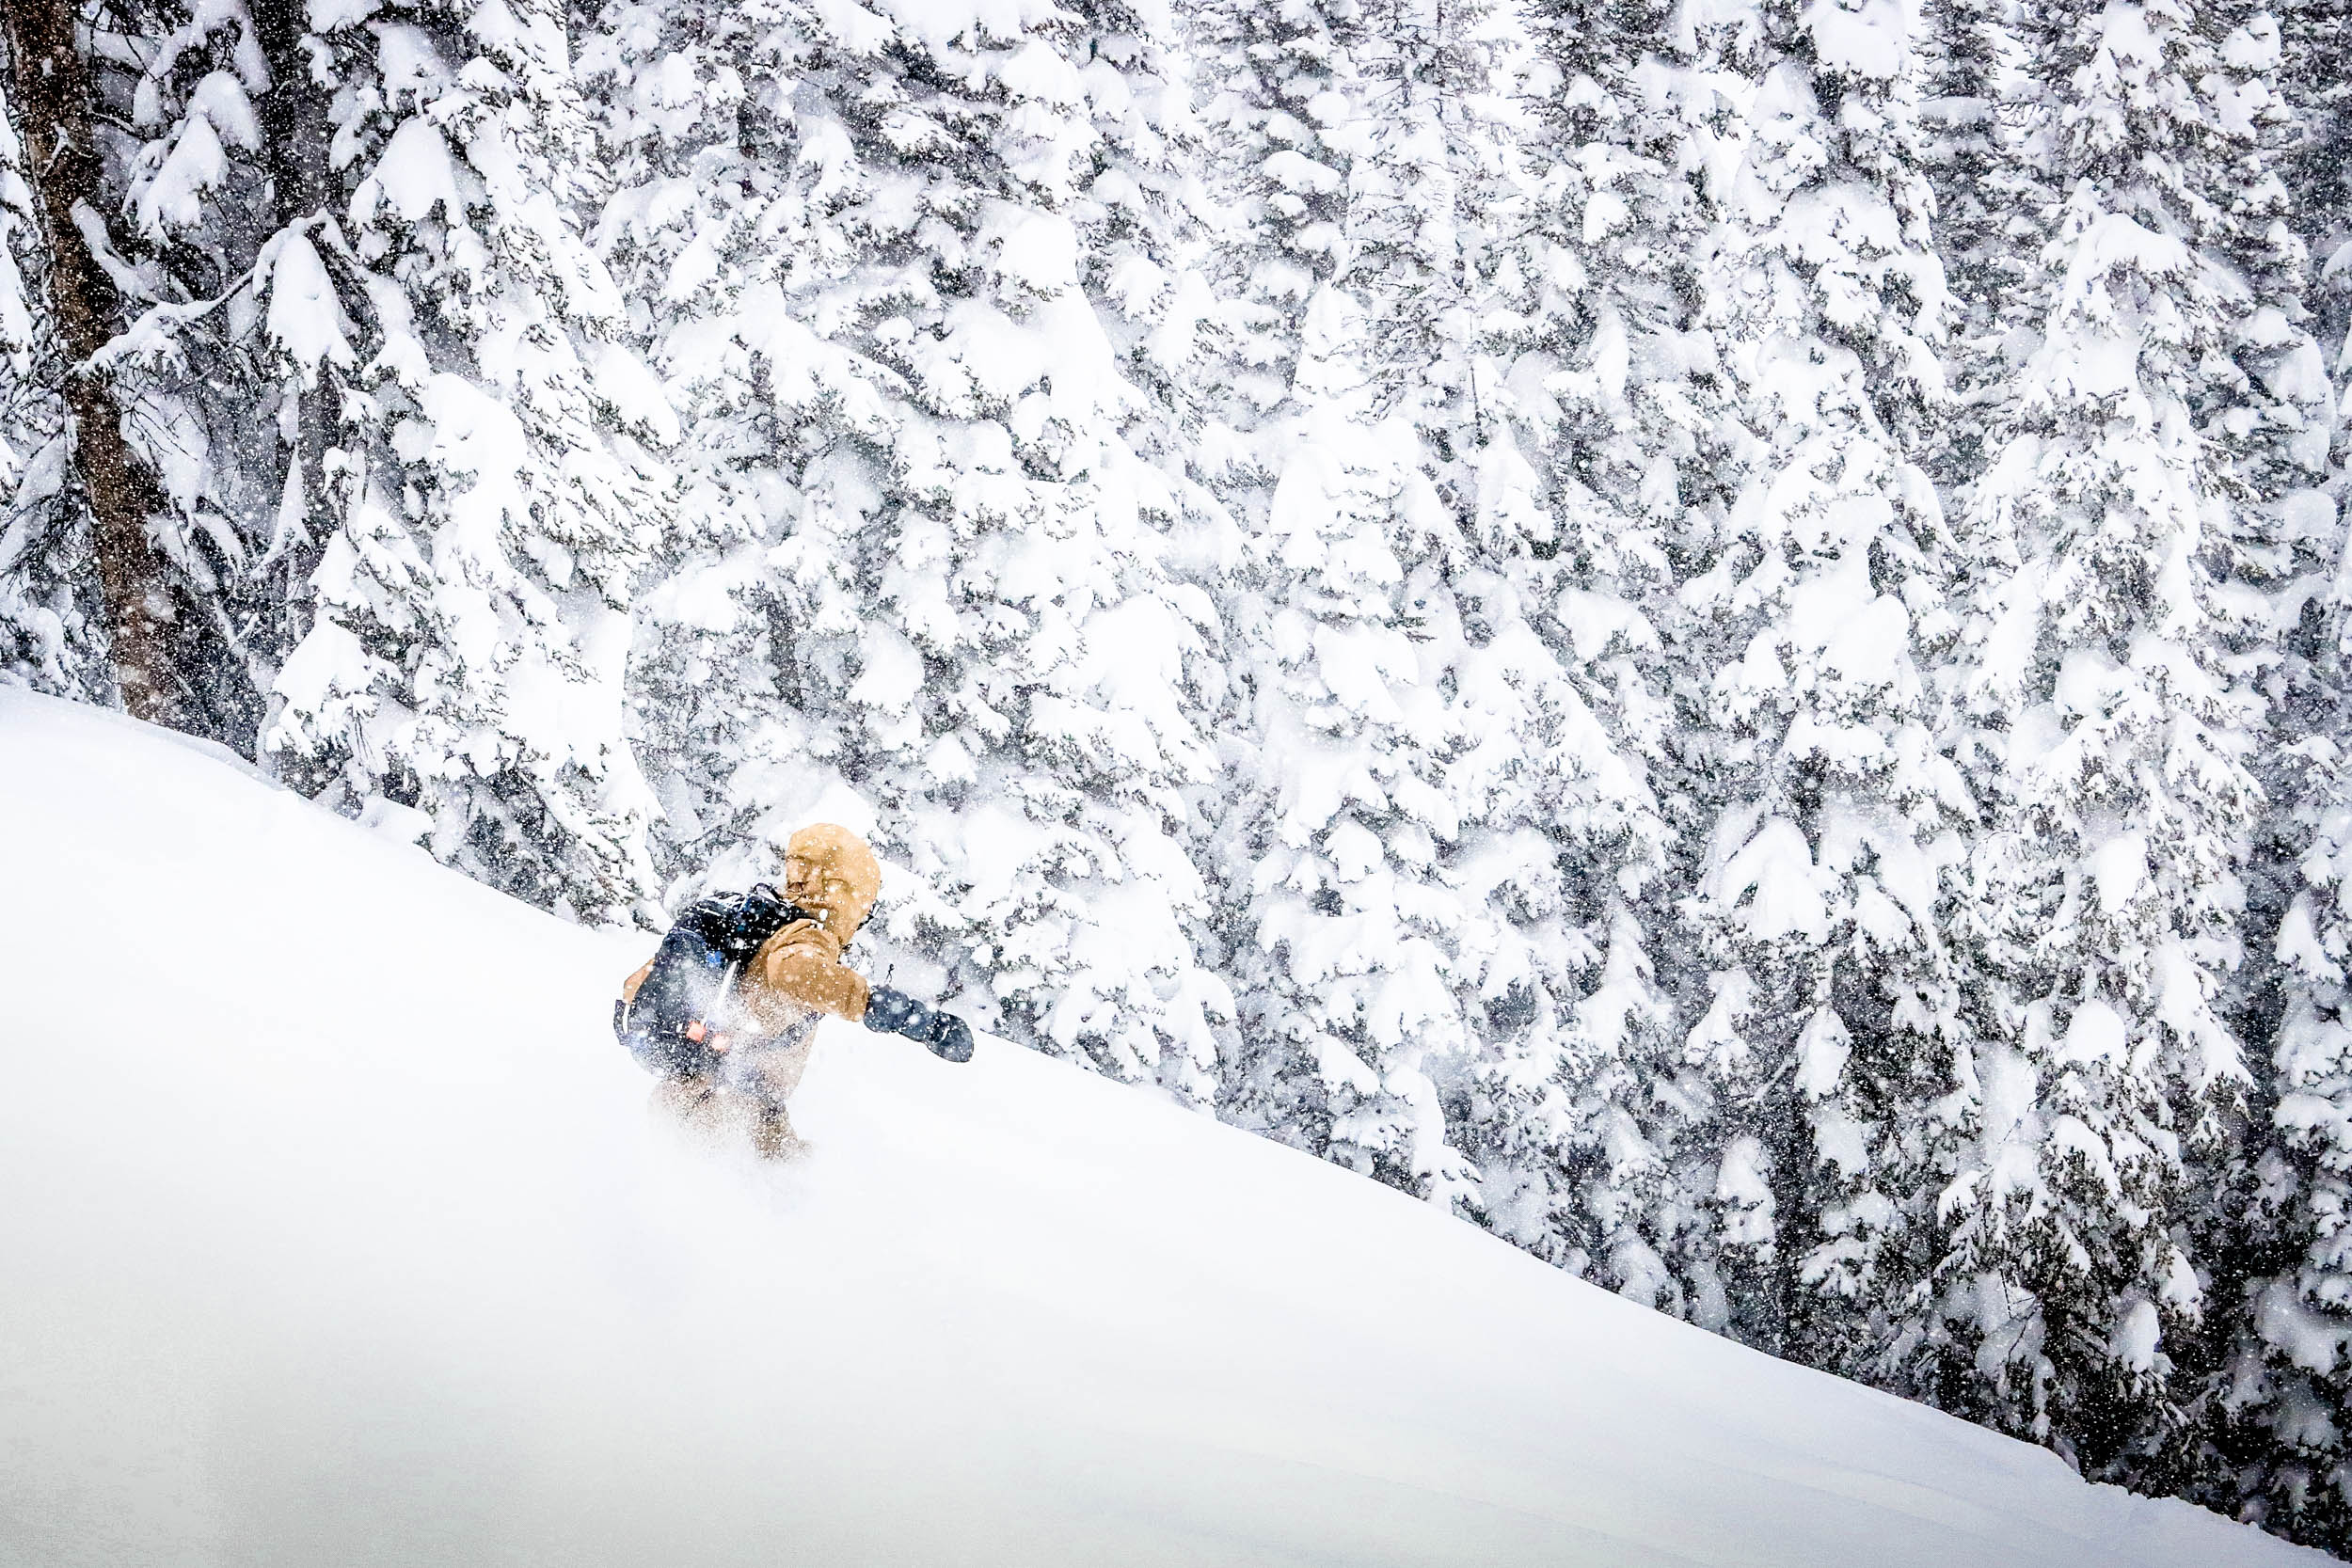 Powder board testing conditions don't get much better than this.. Click to view image.